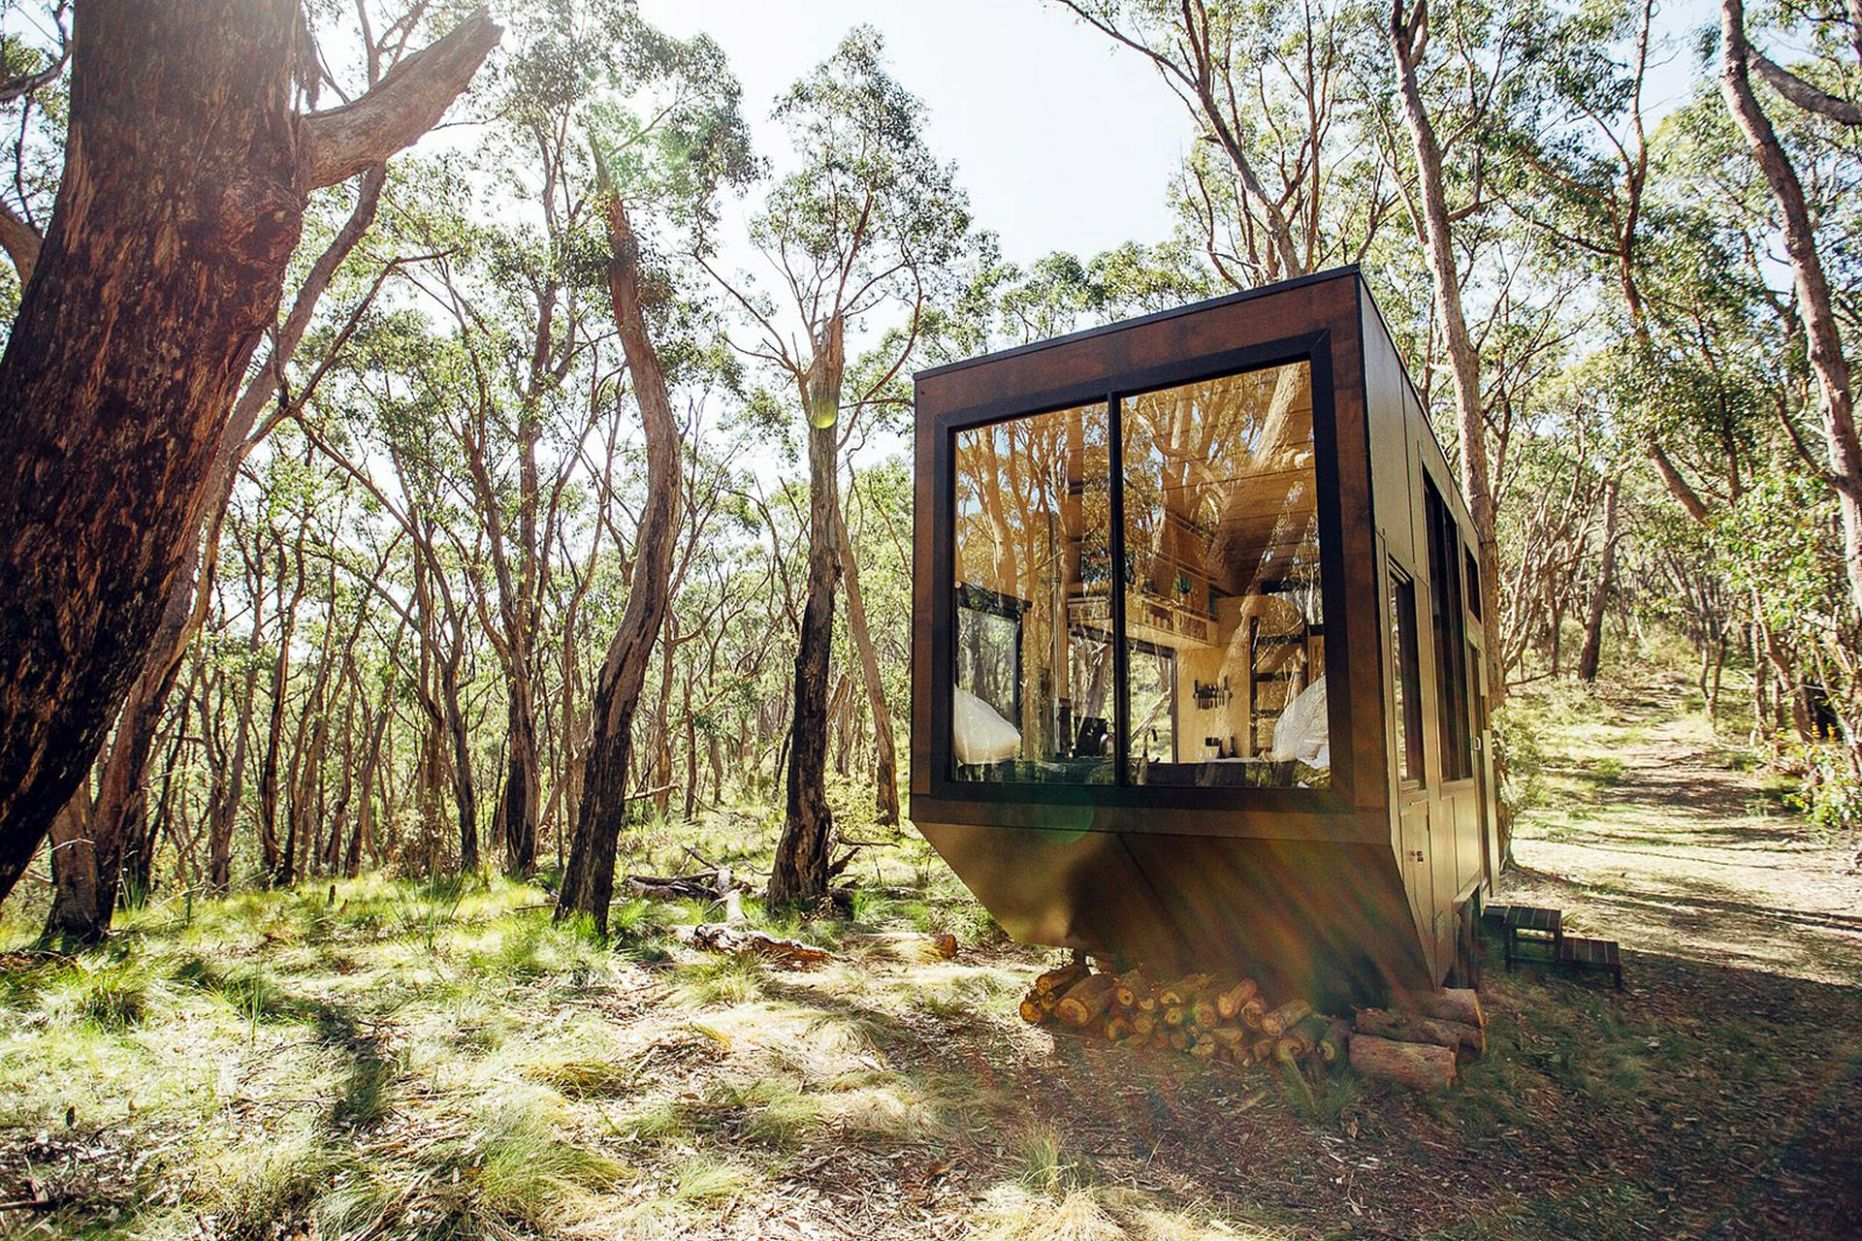 Cabn Adelaide Hills Cabin | Off grid tiny house, Tiny house design ..